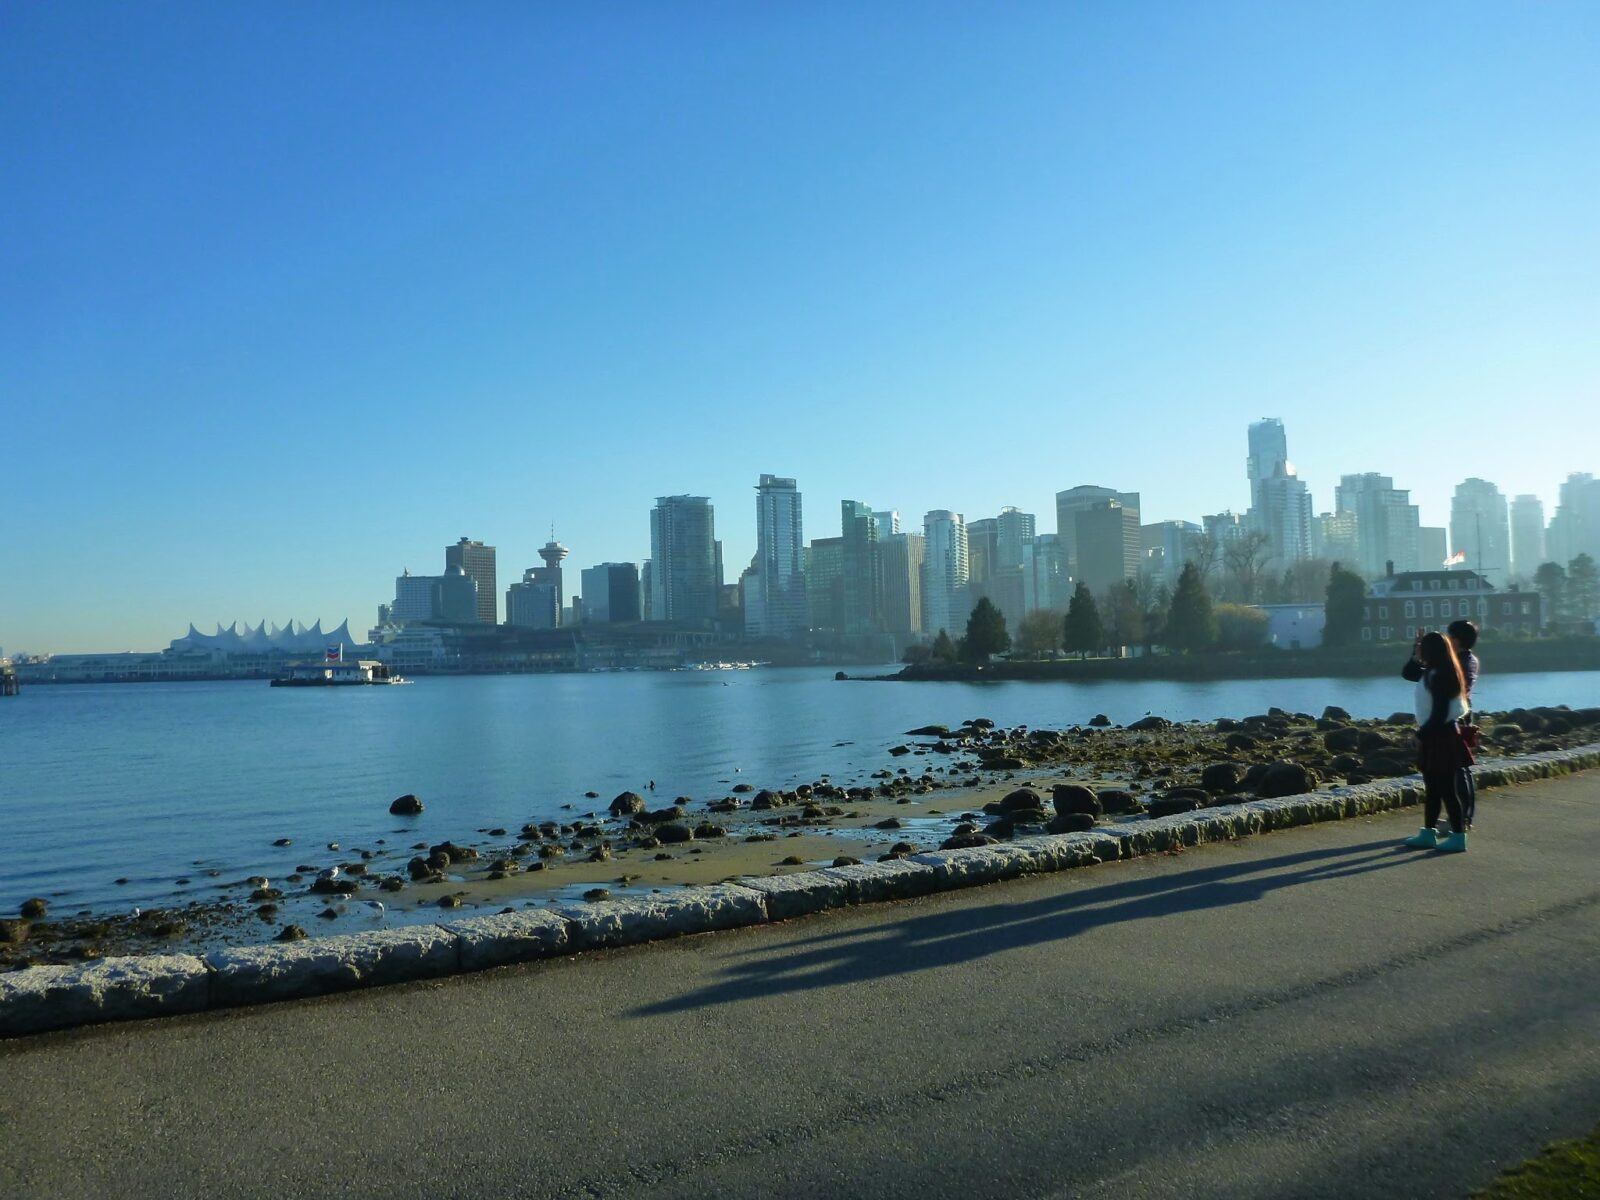 A city skyline is seen in the distance across a body of water. In the foreground is a paved trail and a rocky beach. It's a blue sky sunny day on the Stanley Park Seawall in Vancouver, Canada one of the best weekend getaways from seattle